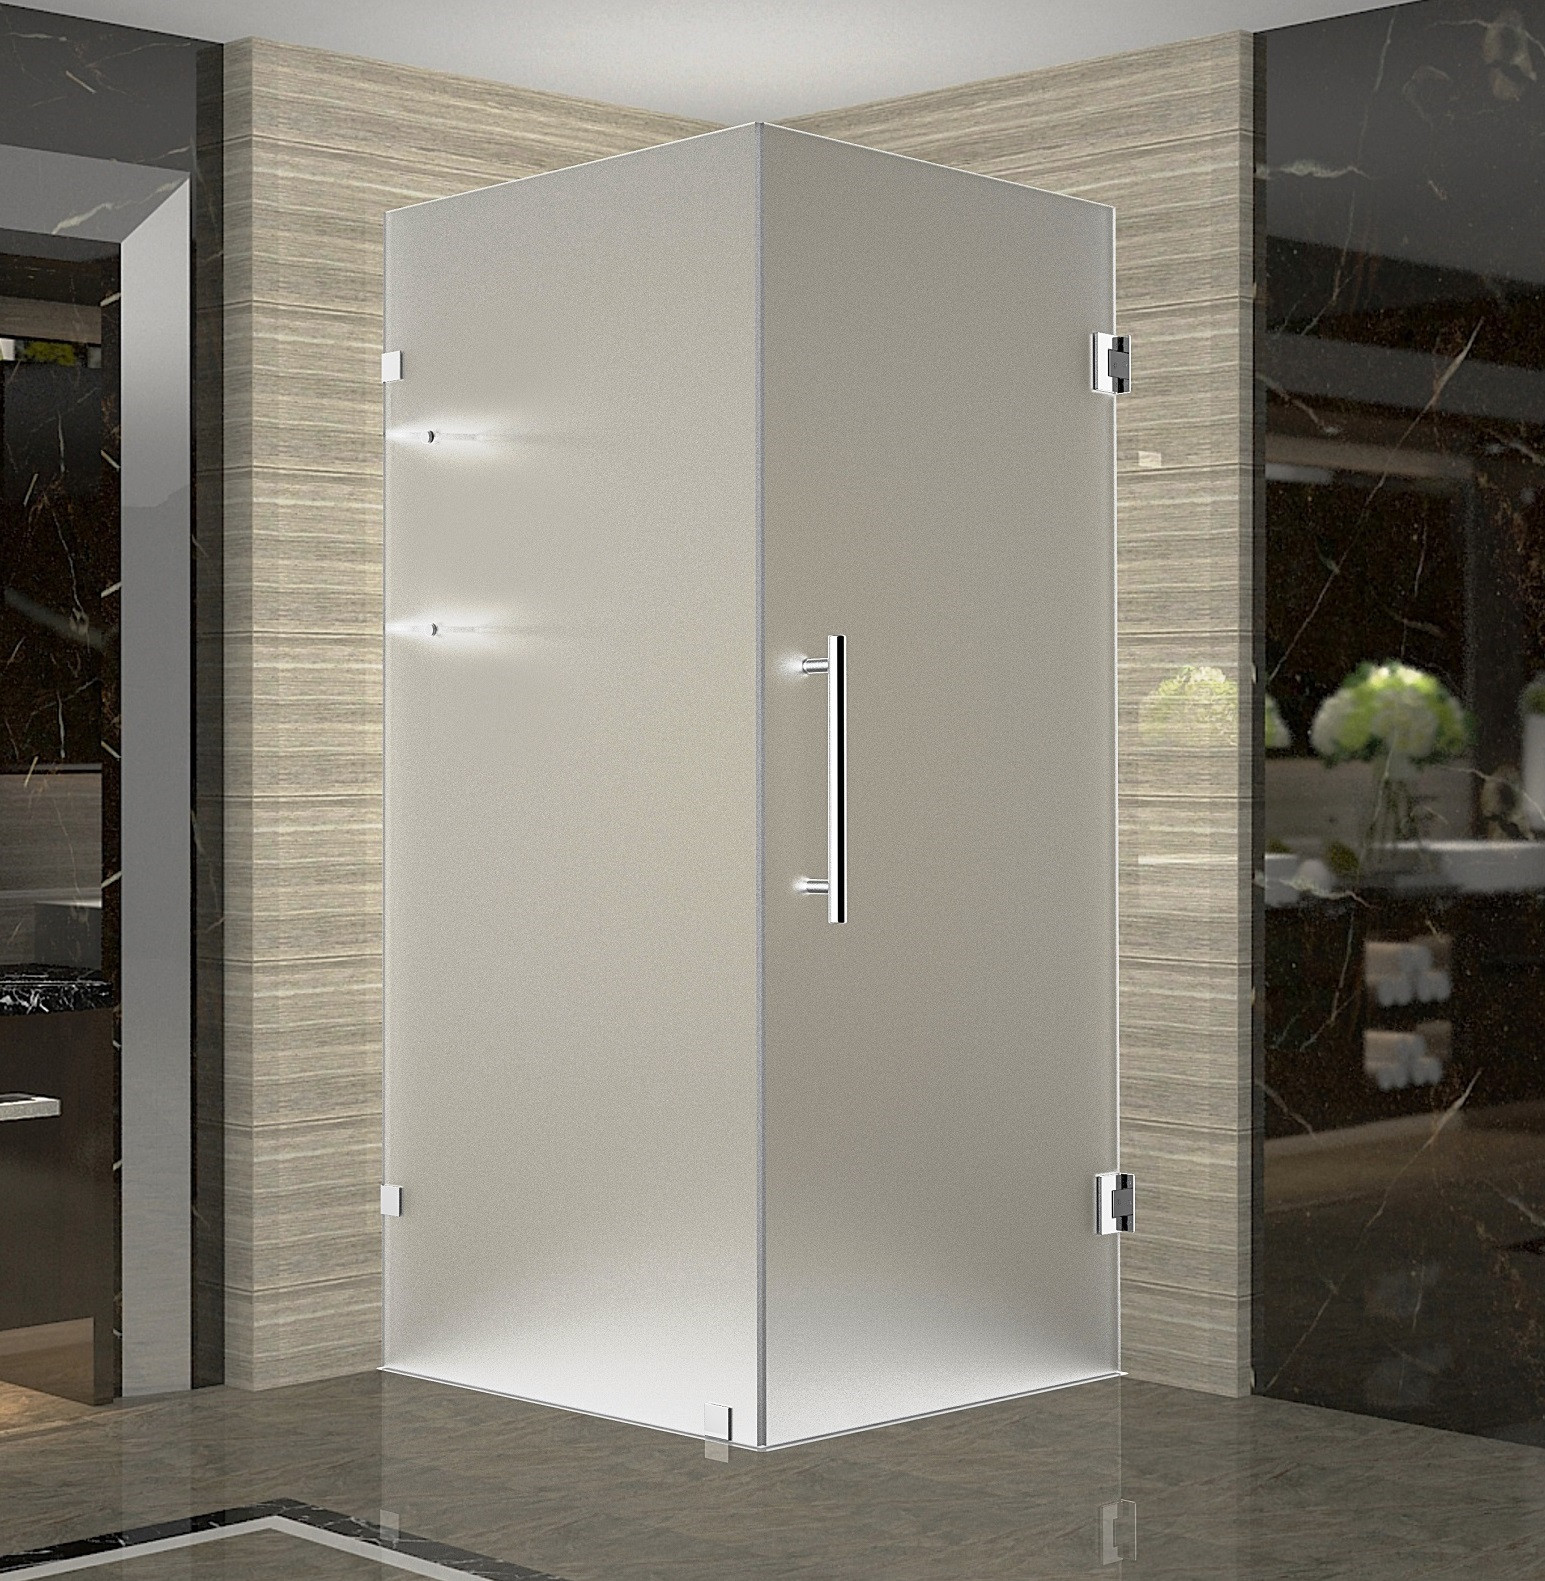 Aston SEN993F-SS-32-10 Stainless Steel Completely Frameless Frosted Shower Enclosure with Shelves